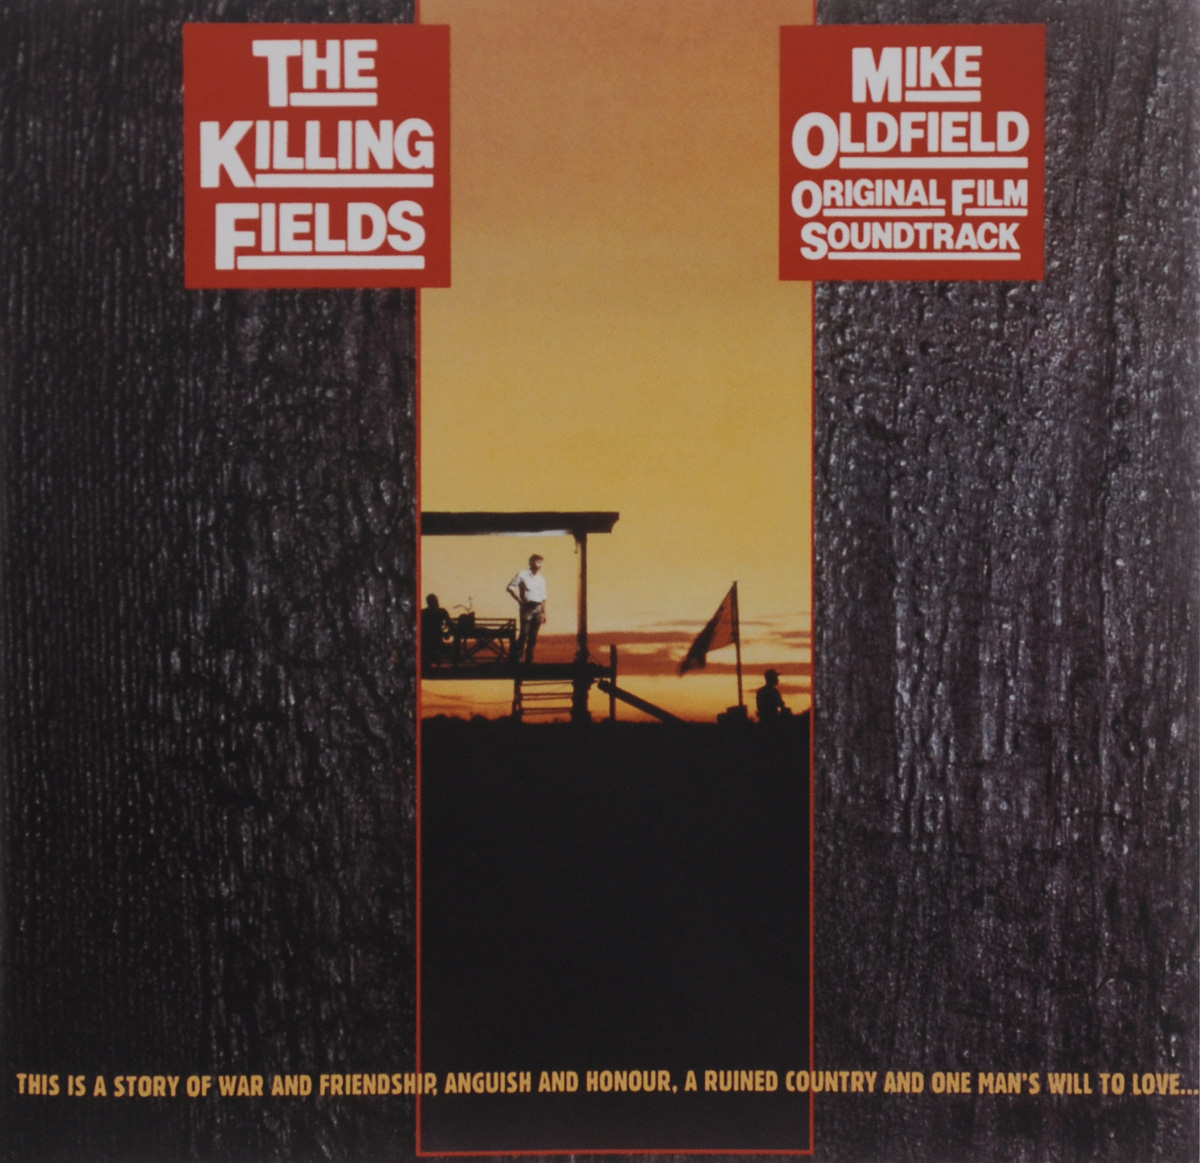 лучшая цена Майк Олдфилд Mike Oldfield. The Killing Fields. Original Film Soundtrack